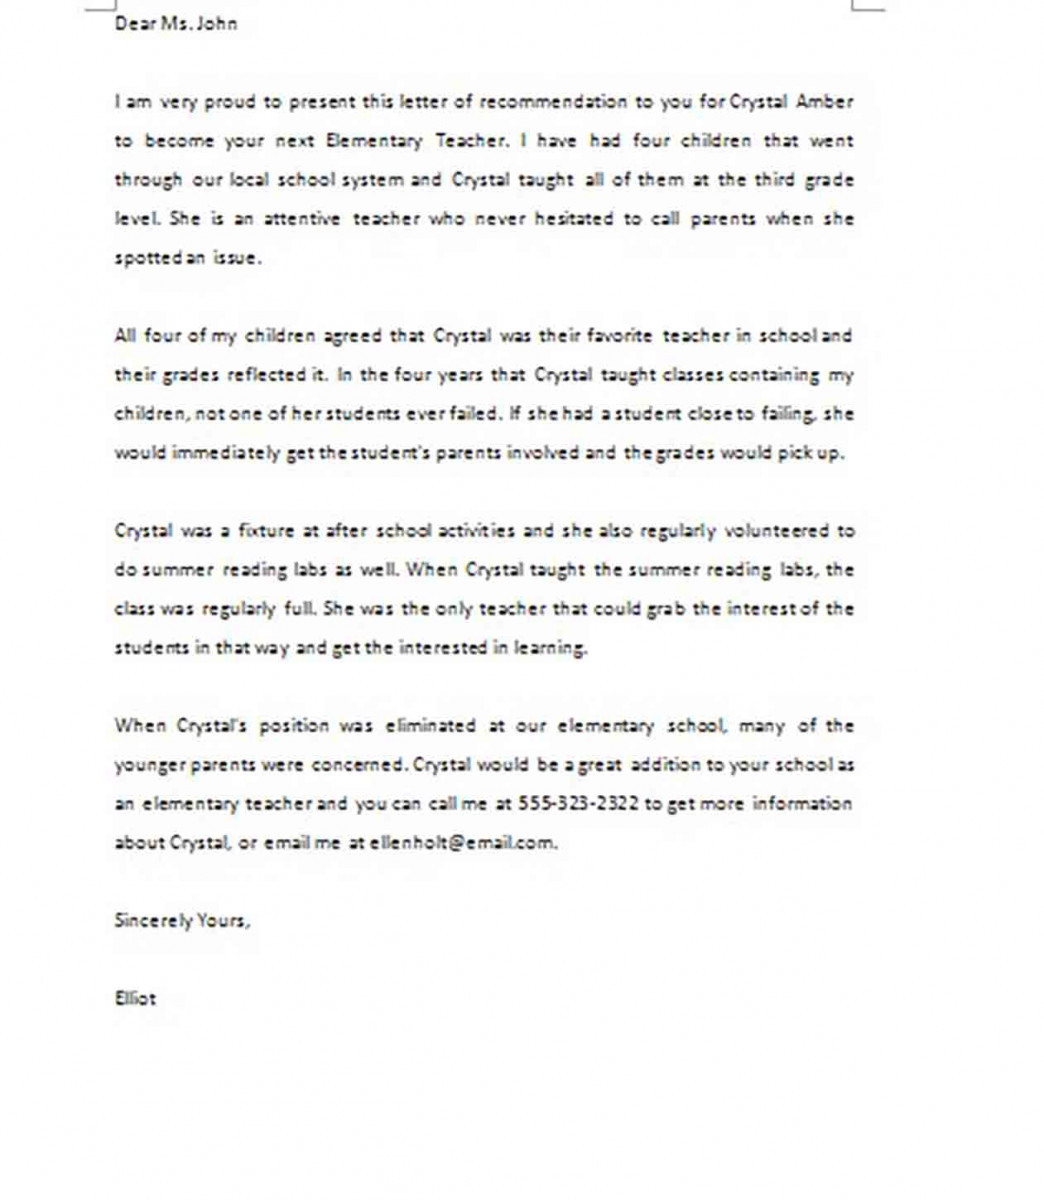 Sample Letter of Recommendation Elementary Teacher